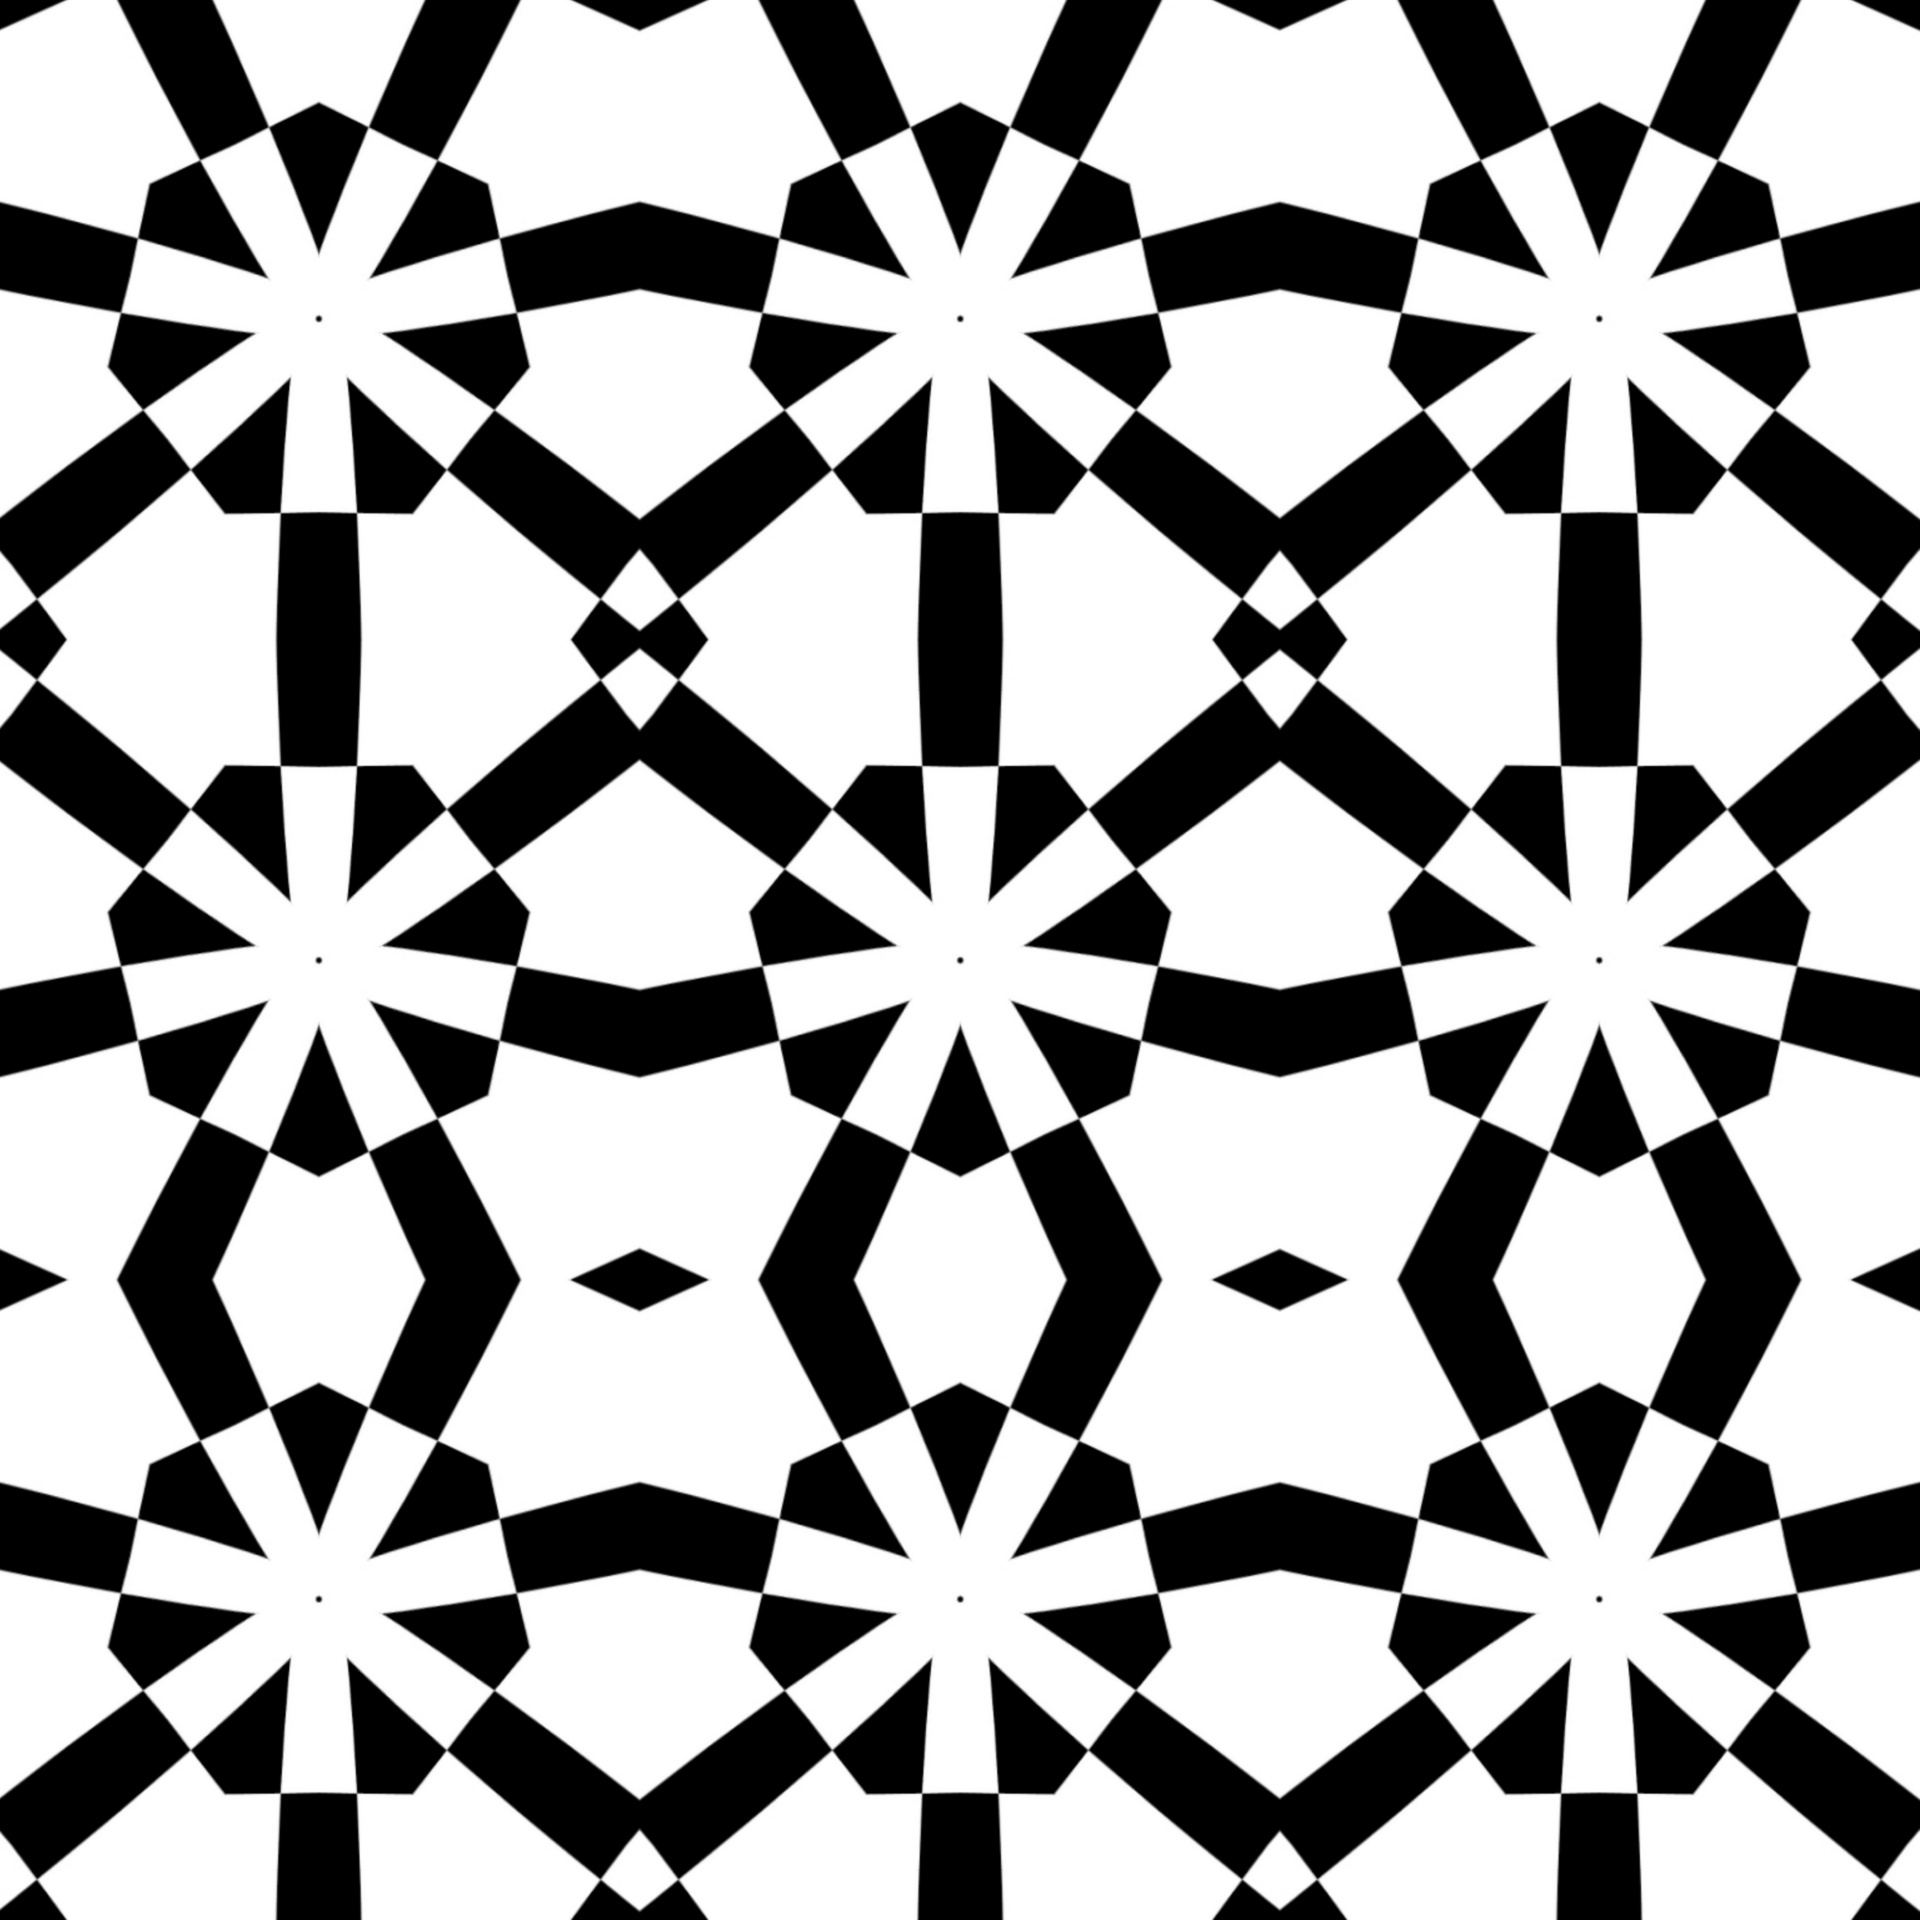 1920x1920 Checkerboard Flowers Free Stock Photo